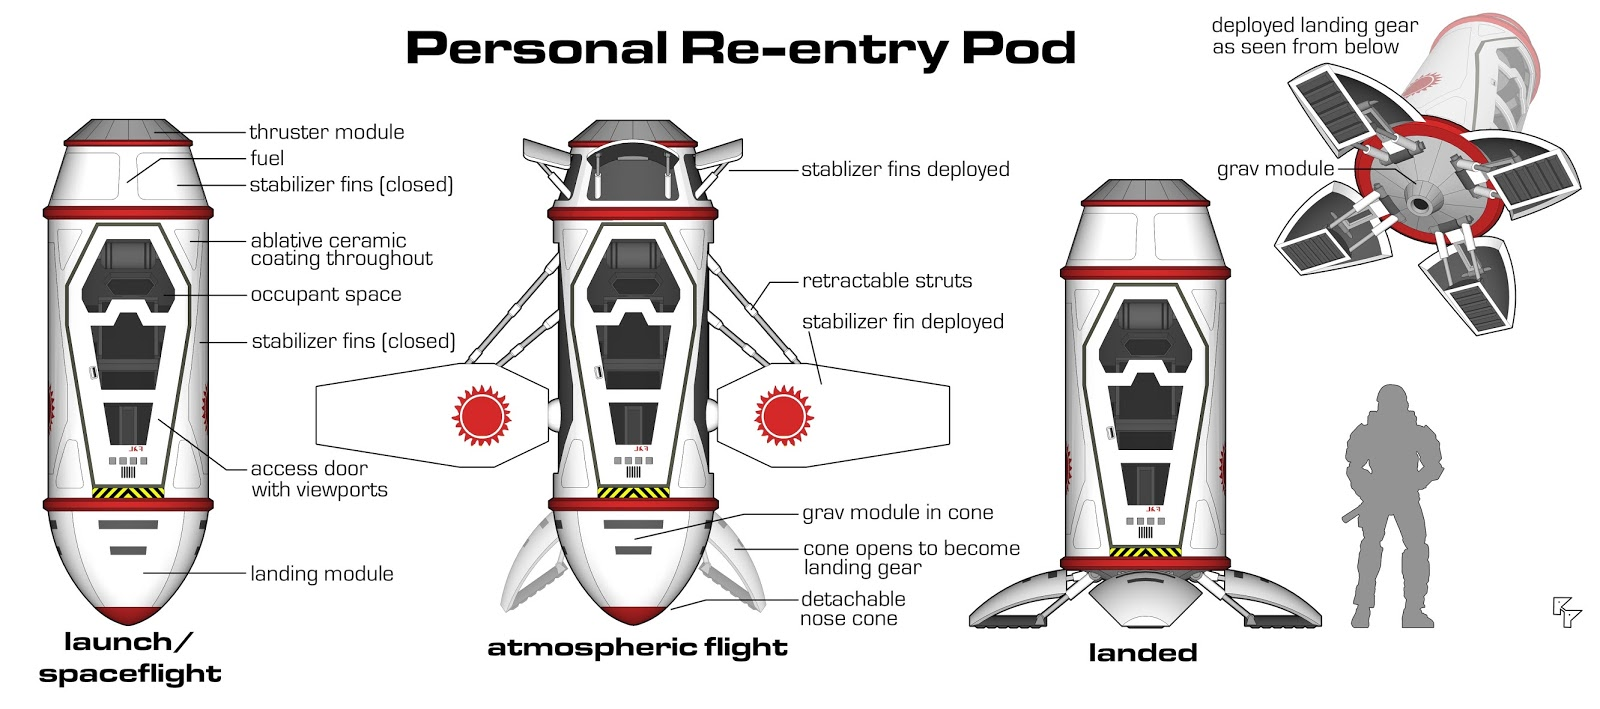 Yet Another Traveller Blog: P is for Personal Re-entry Pod